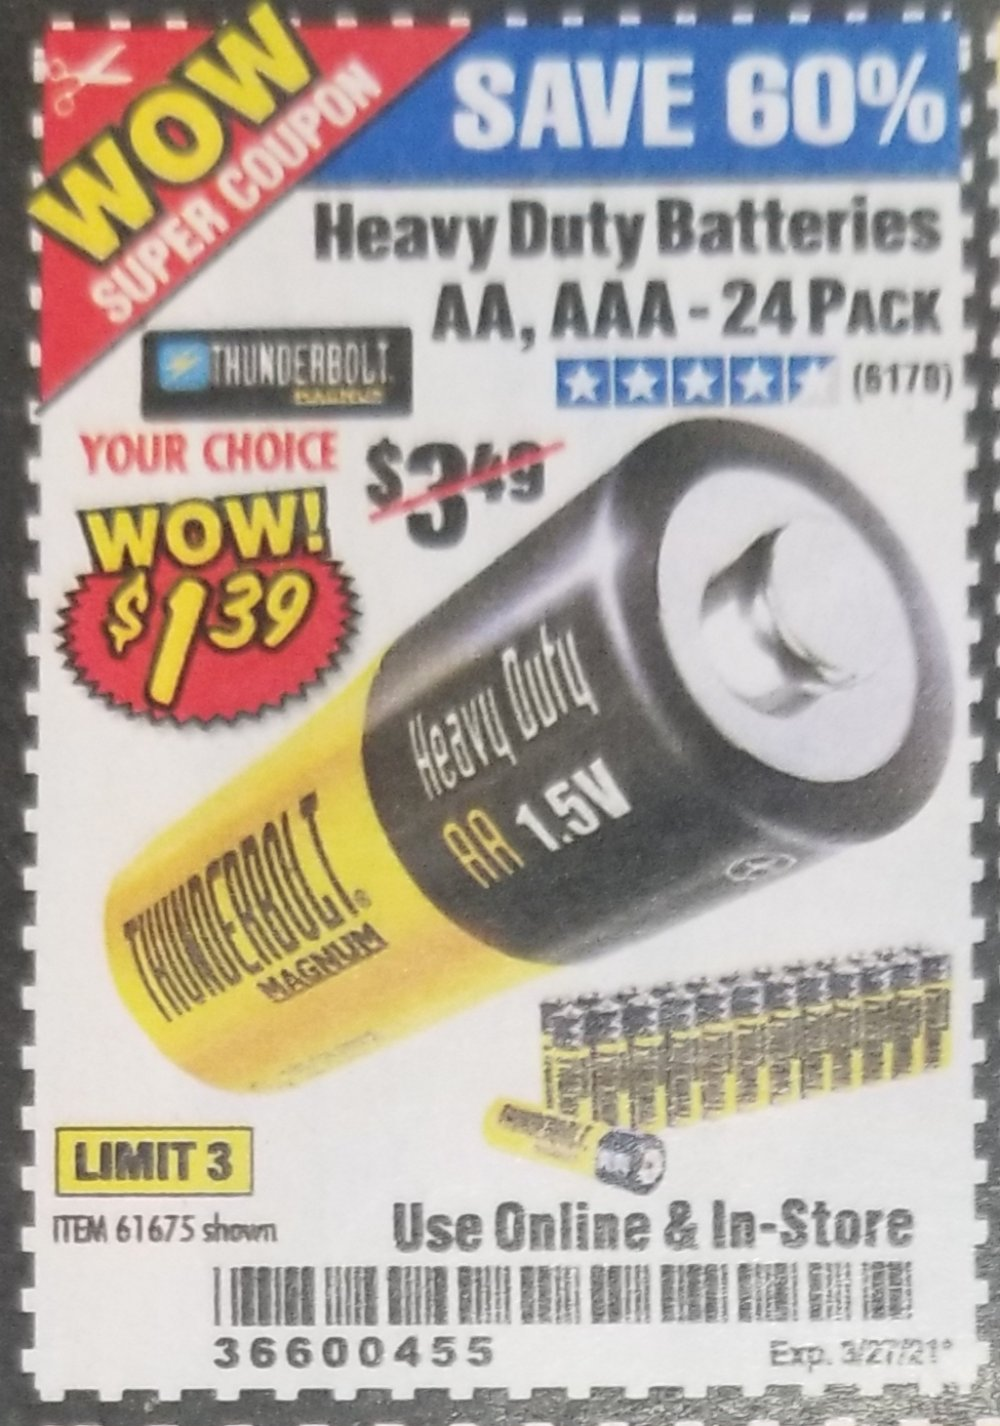 Harbor Freight Coupon, HF Coupons - AA, AAA Batteries 24 pk